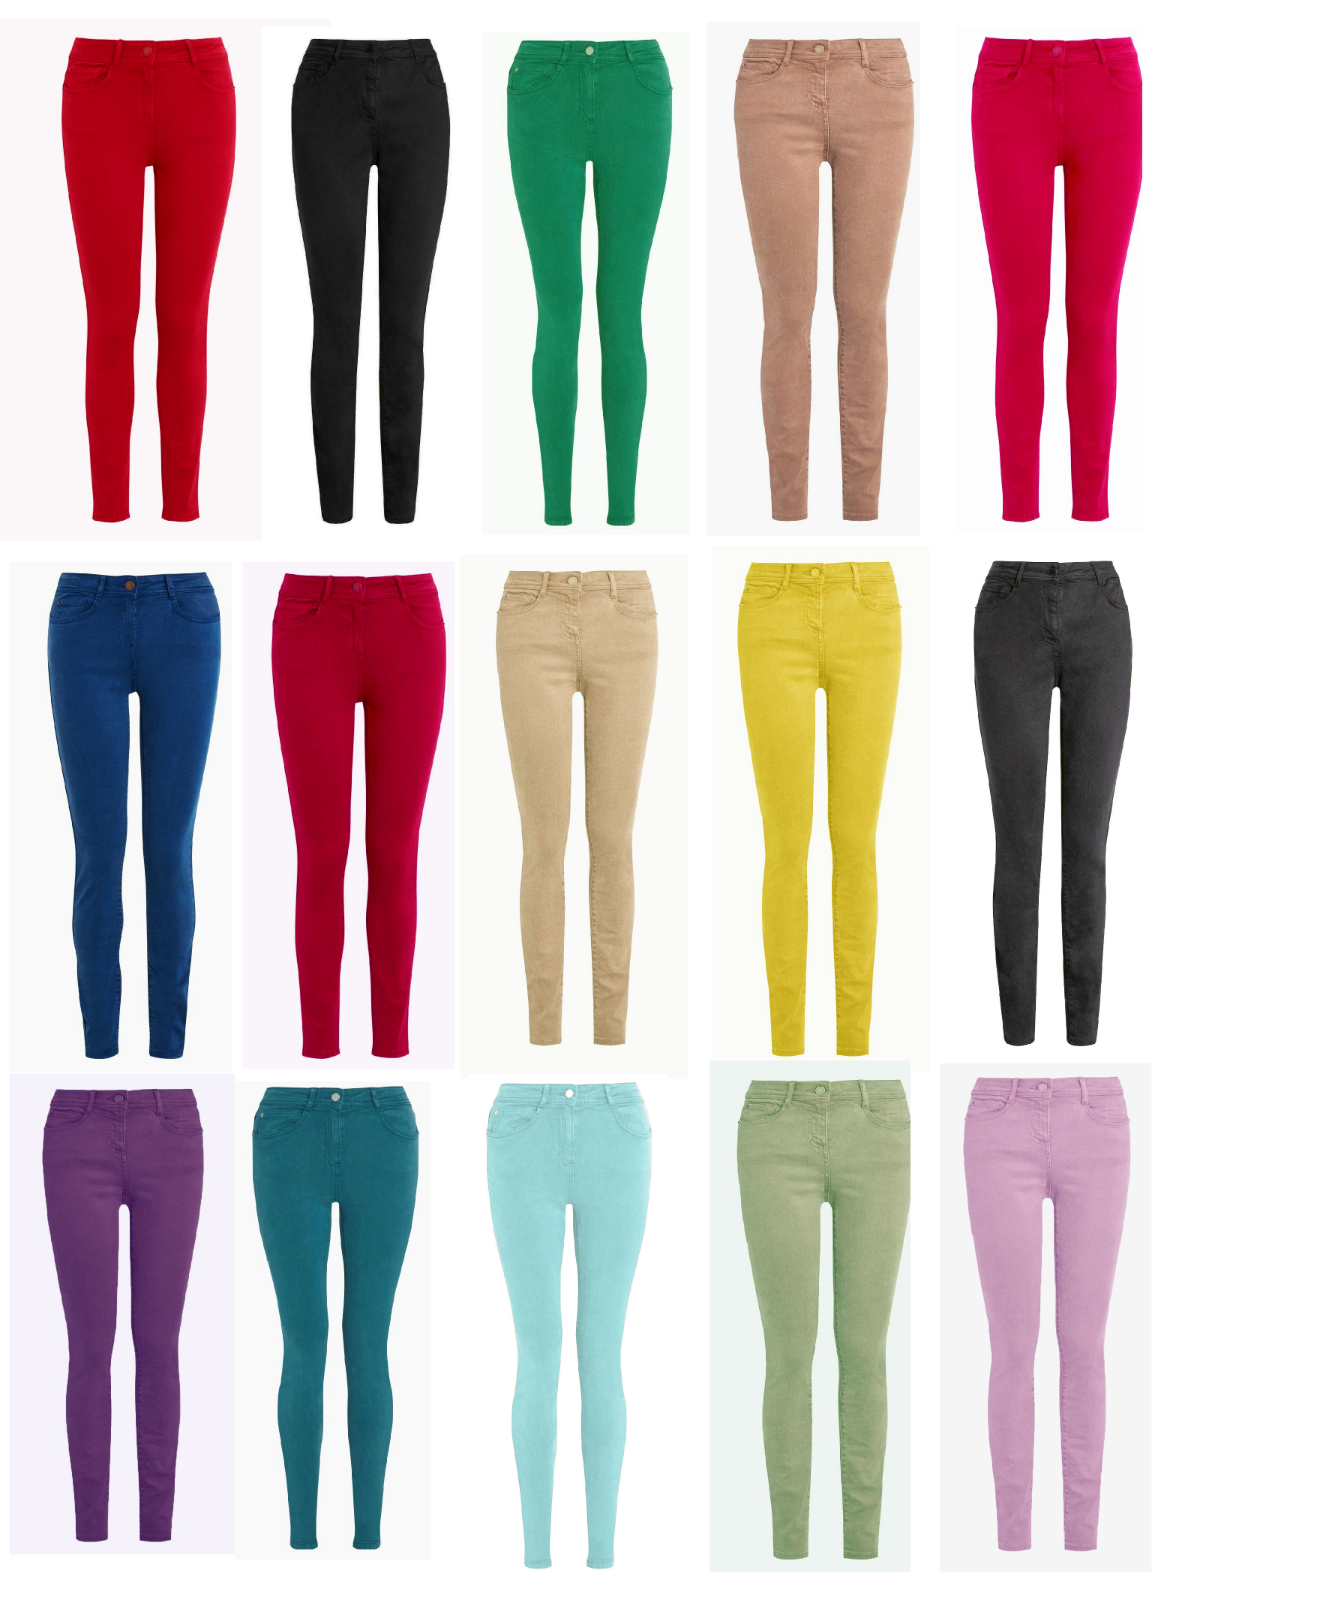 Details about Womens Ex Next Skinny Denim Jeans Ladies Soft Touch Slim Fit Sizes 6 to 22